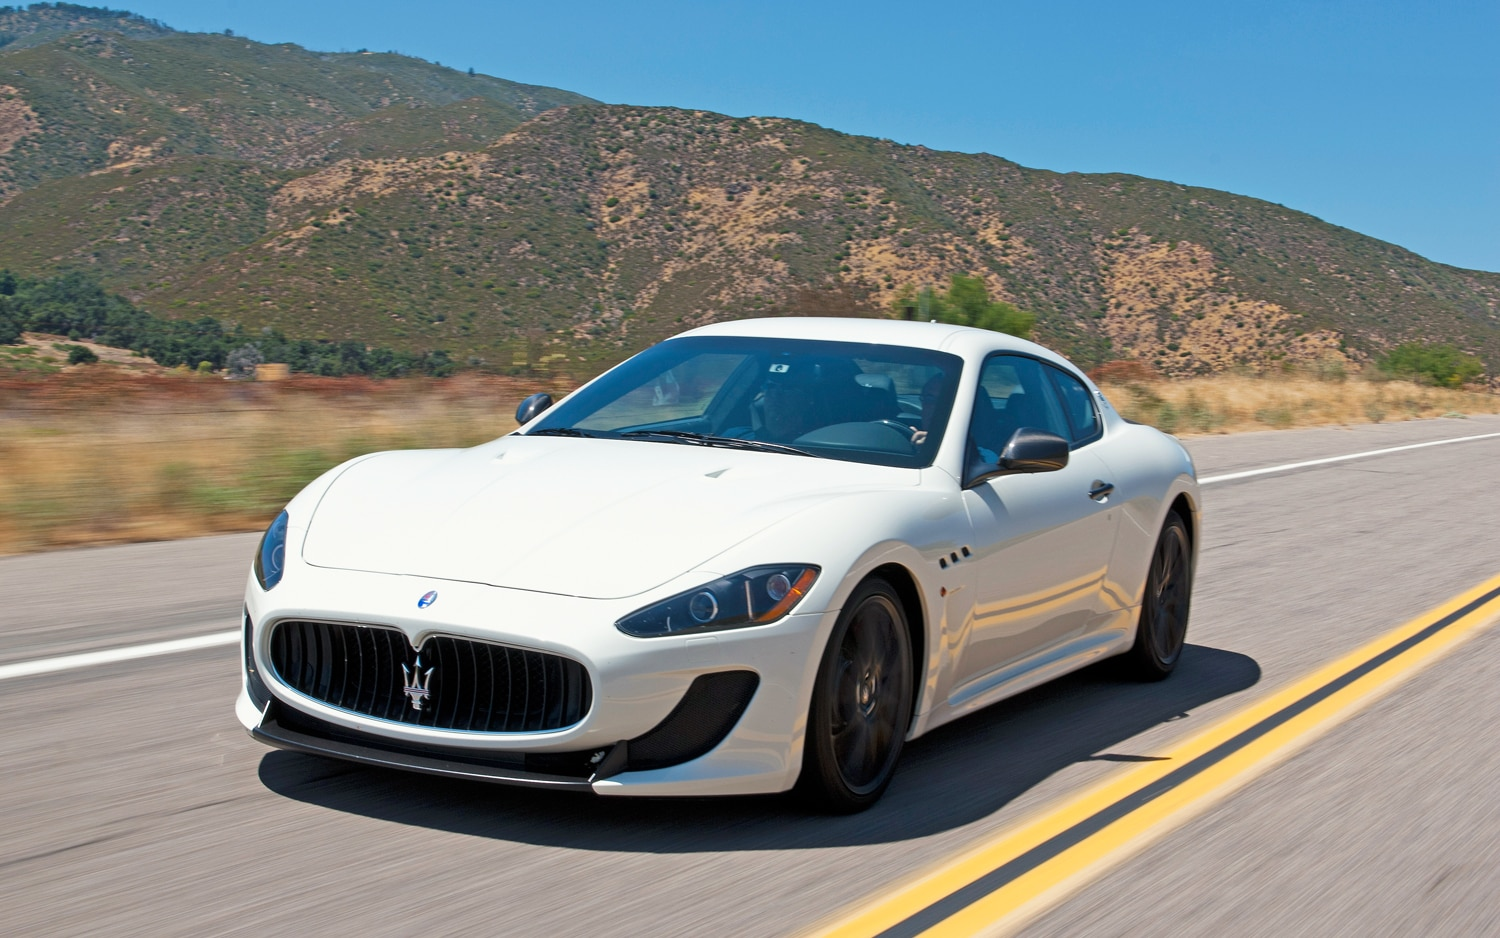 2012 Maserati GranTurismo MC Front Left Side View